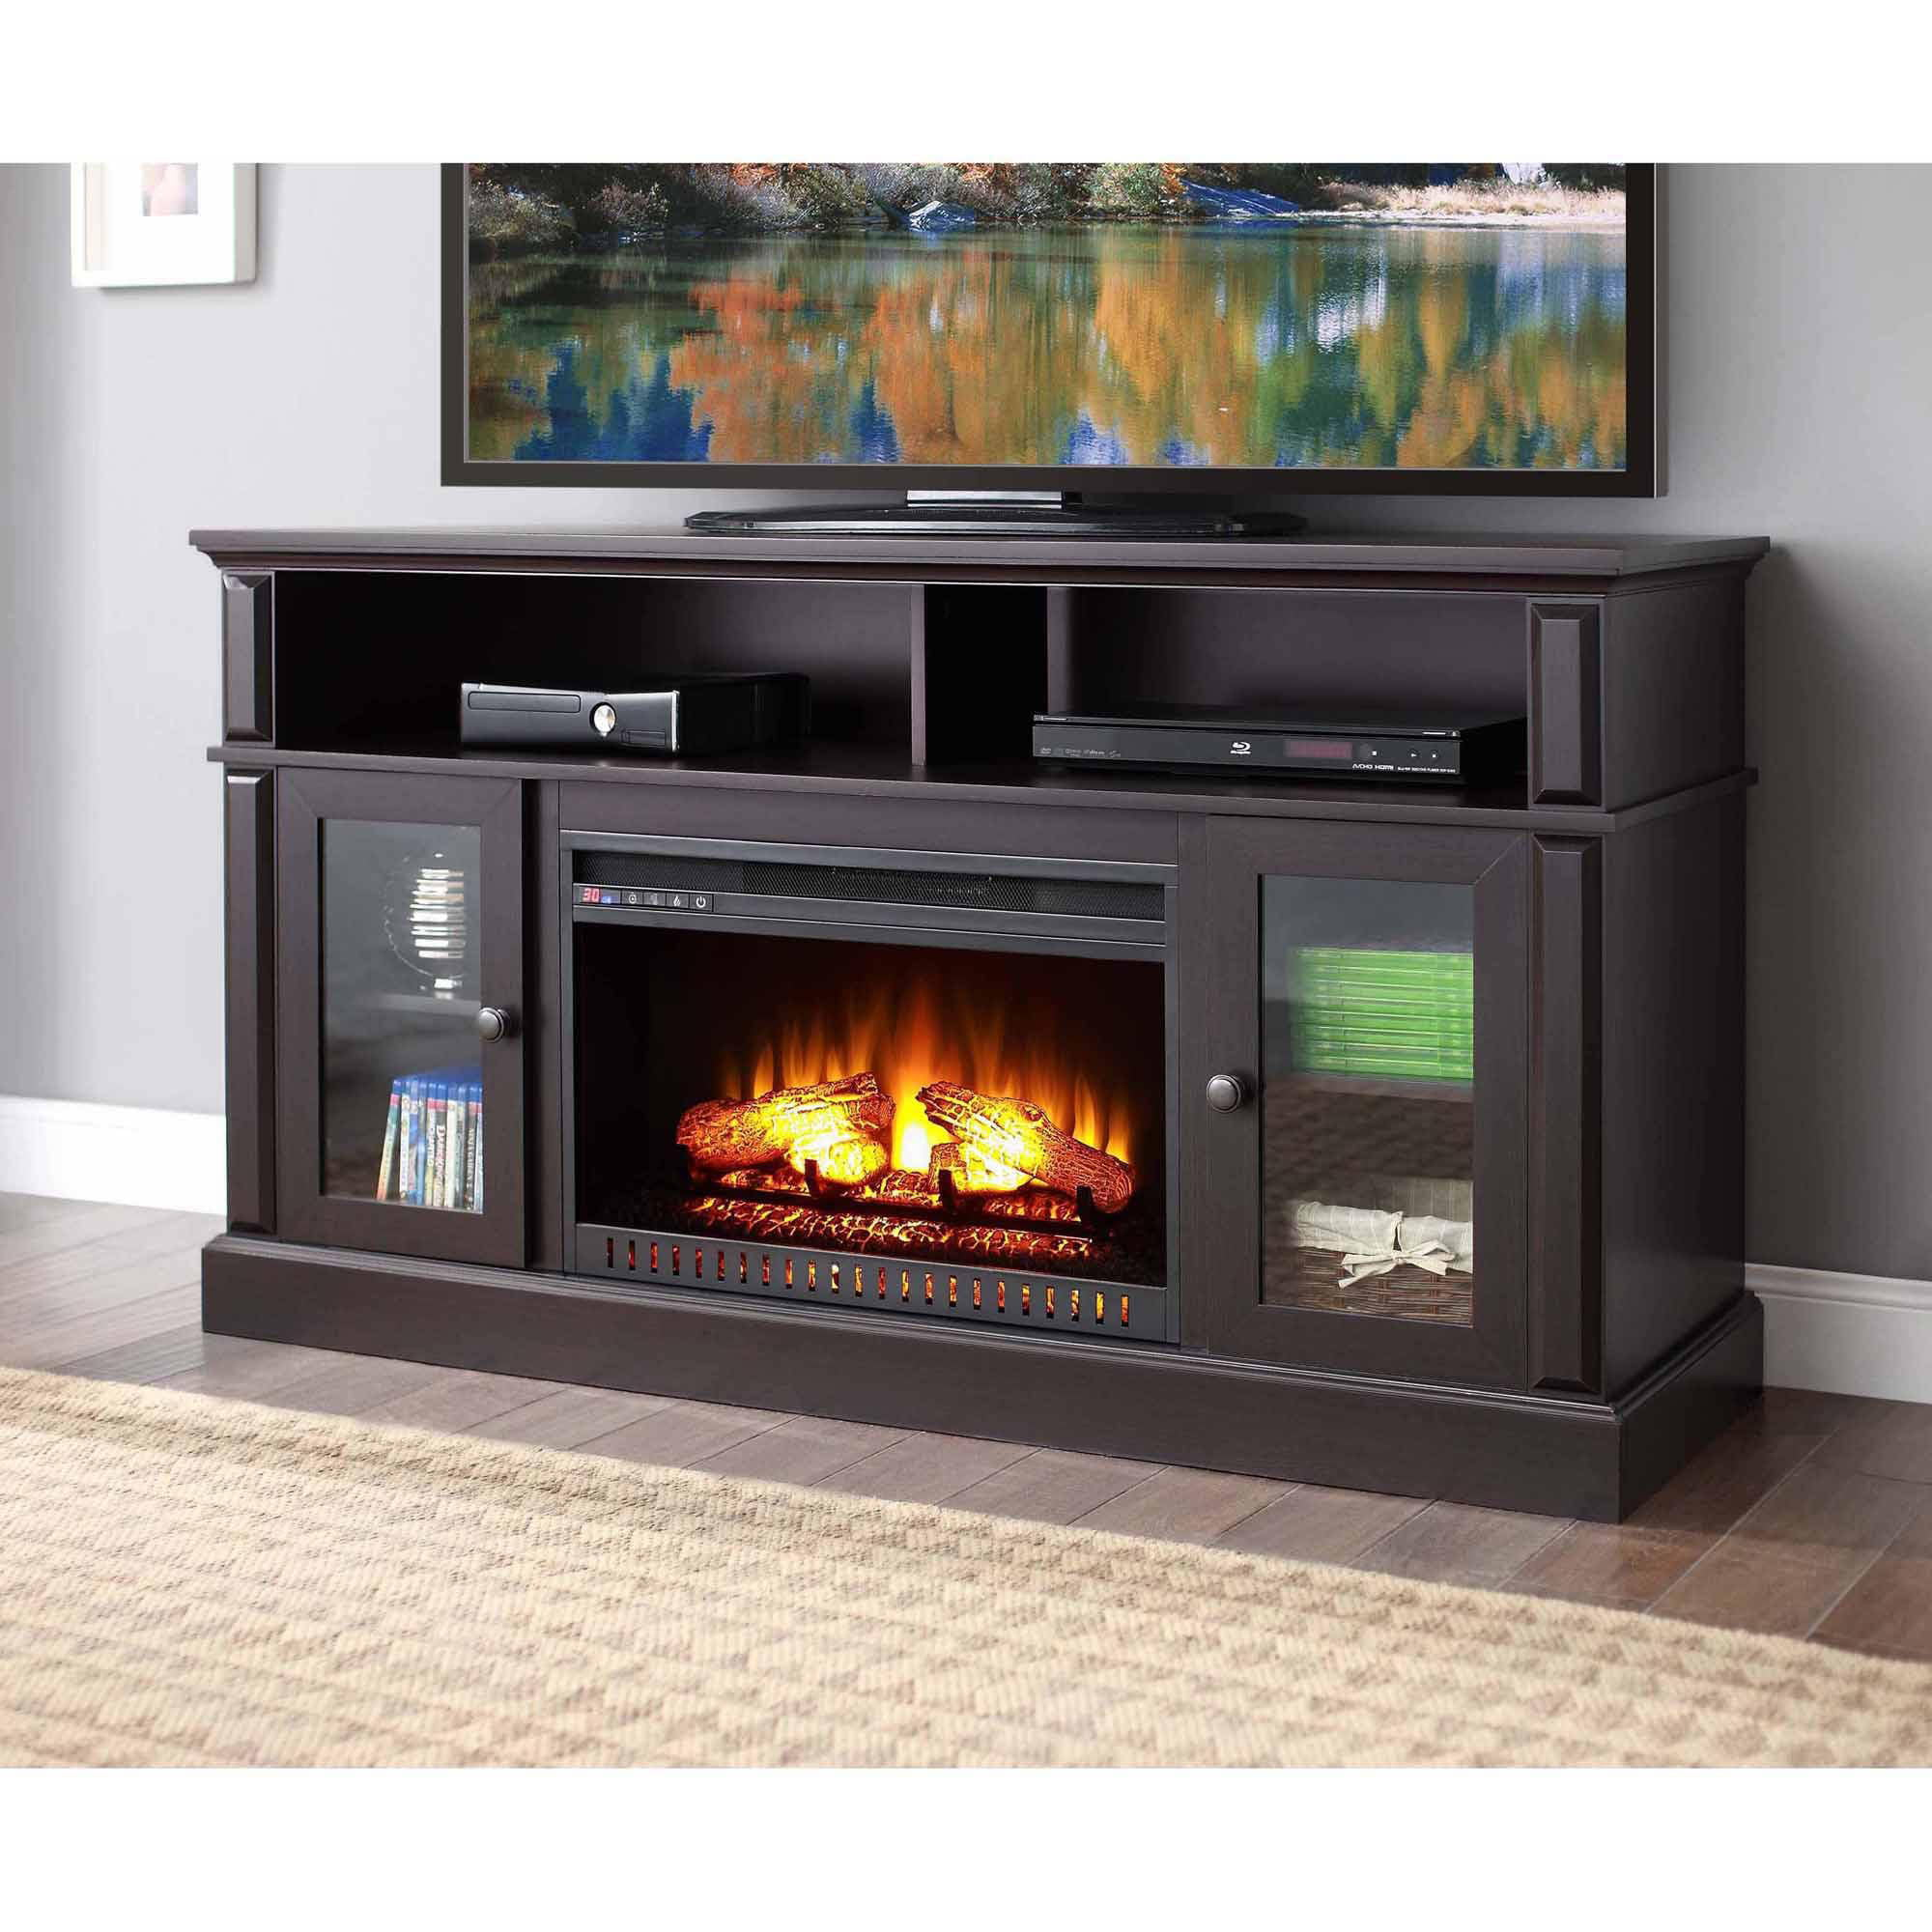 farmington electric fireplace tv console for tvs multiple colors and sizes walmart